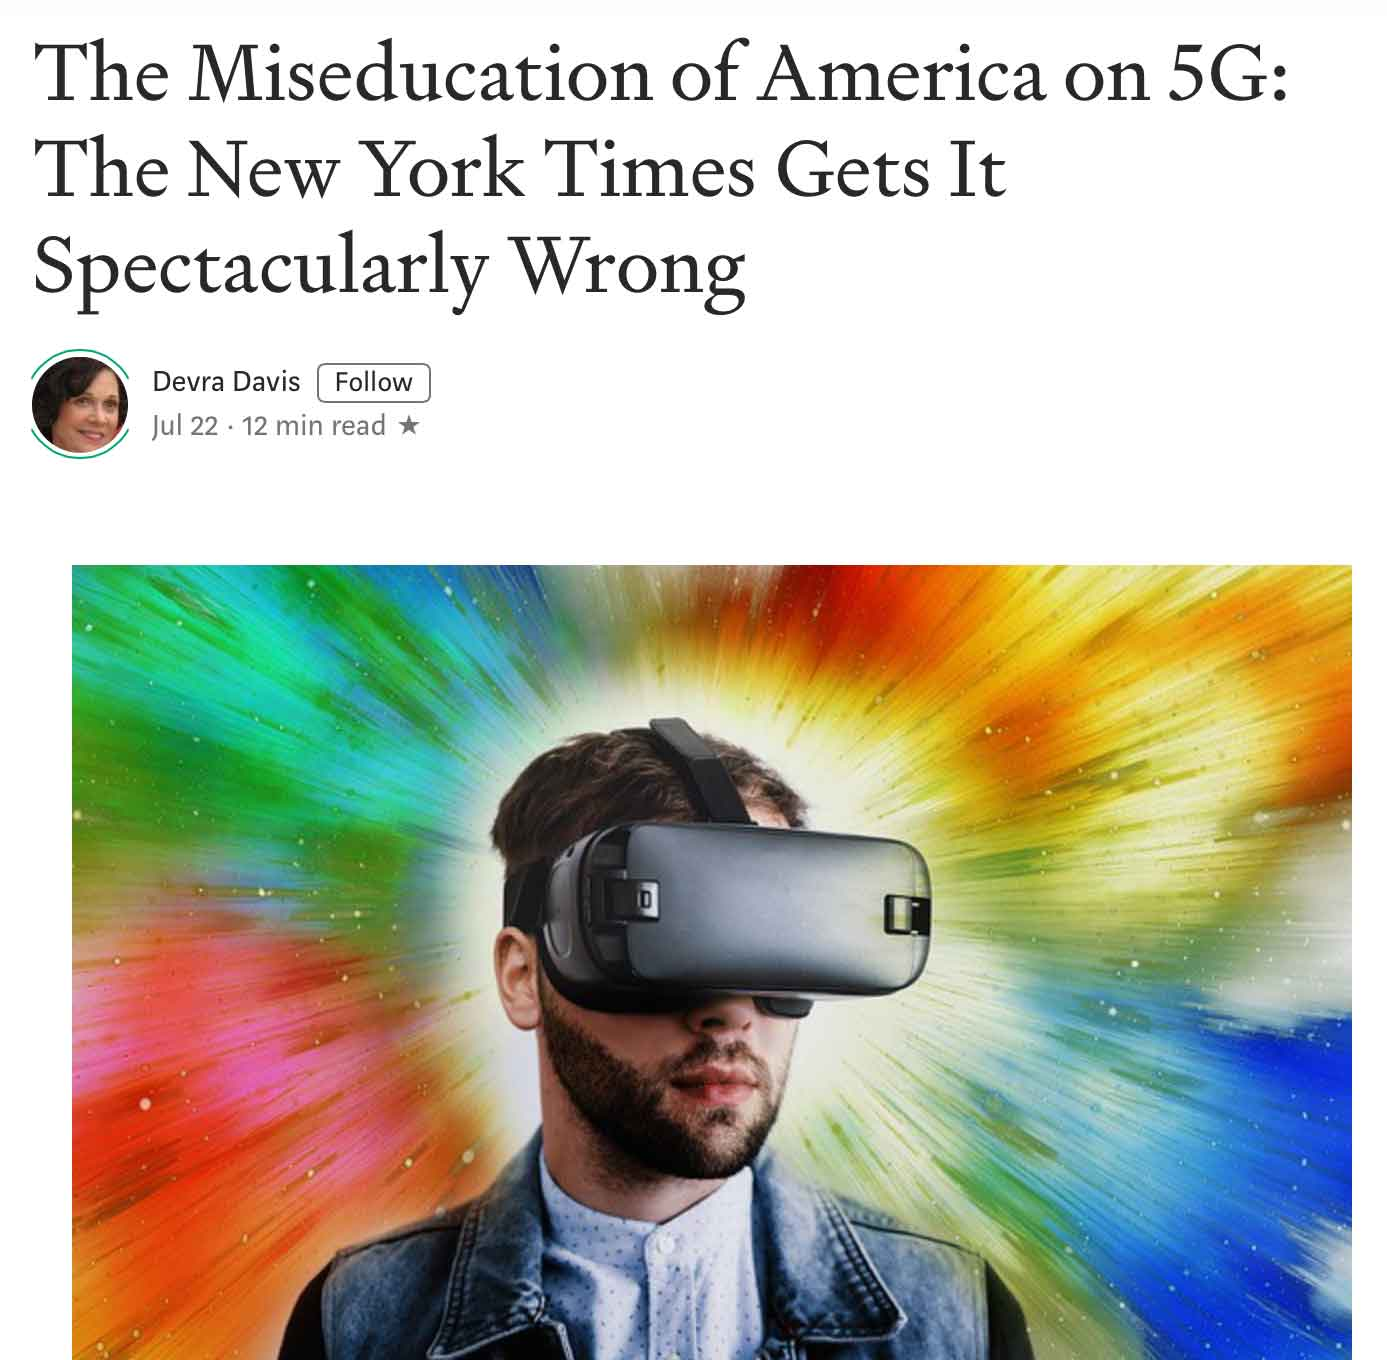 The Miseducation of America on 5G: The New York Times Gets It Spectacularly Wrong